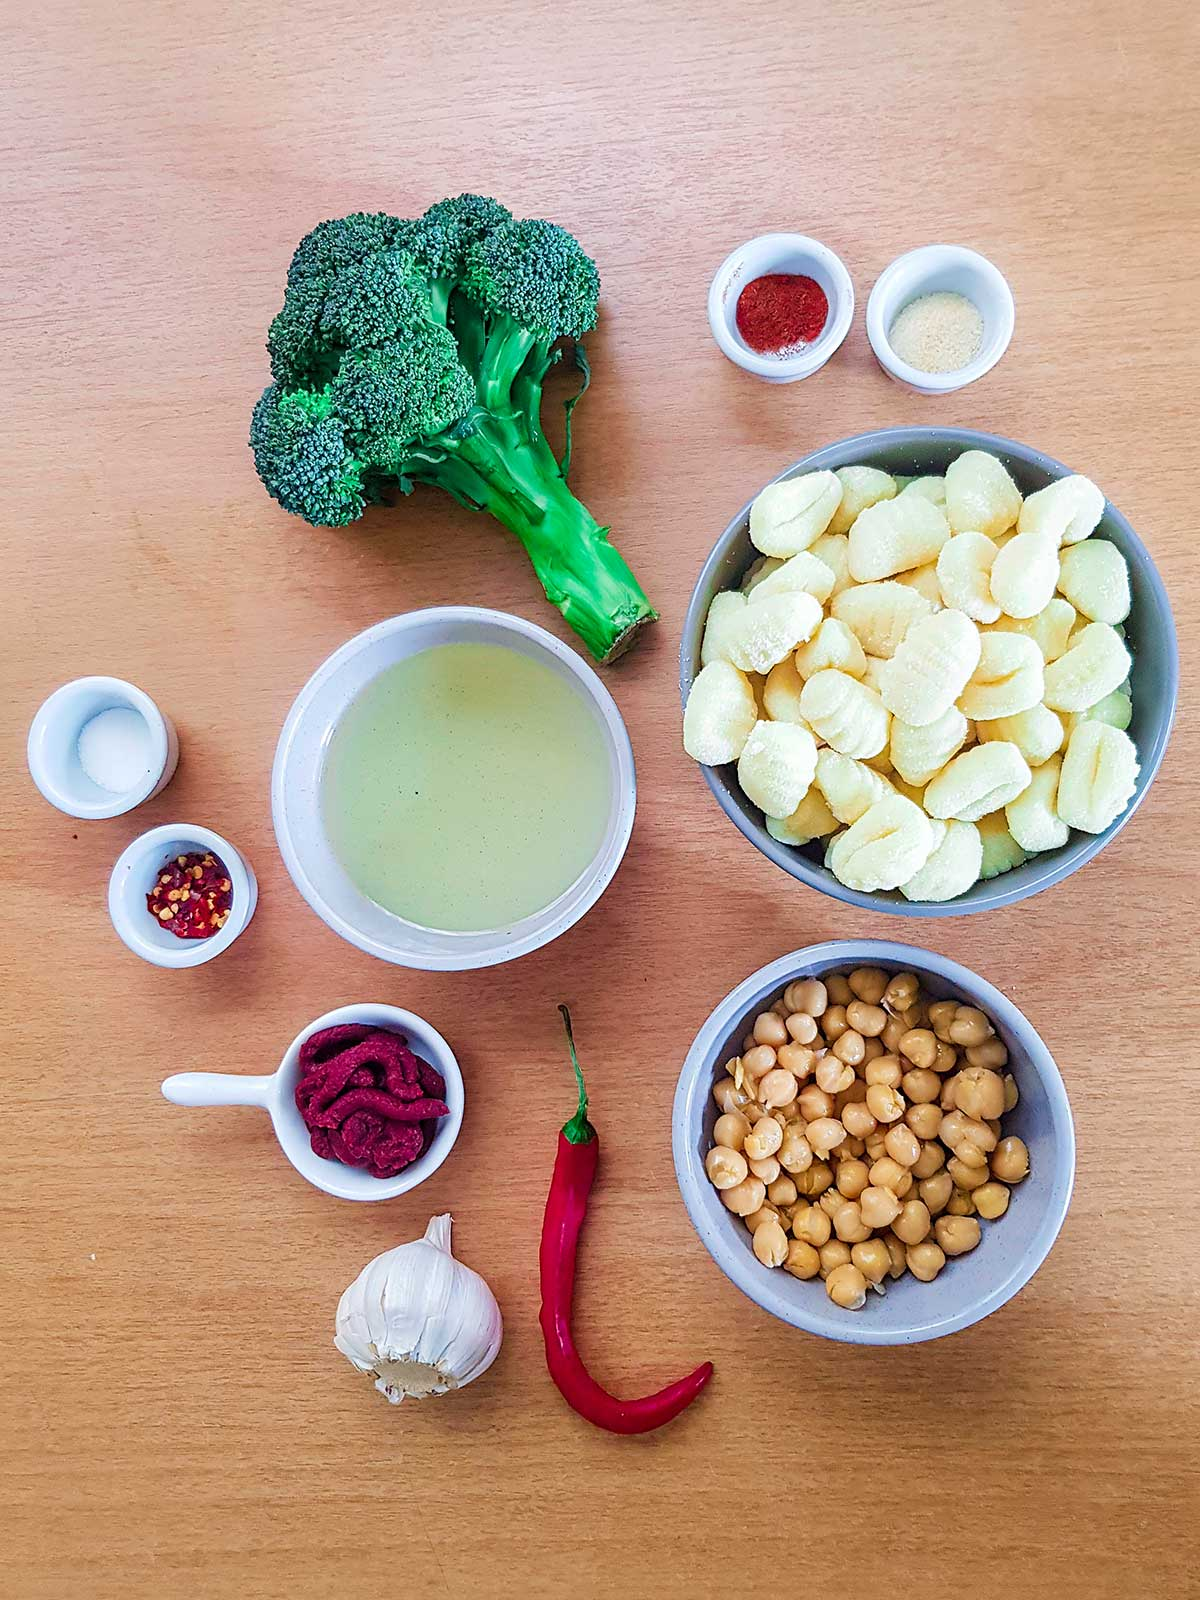 pan fried gnocchi with broccoli ingredients